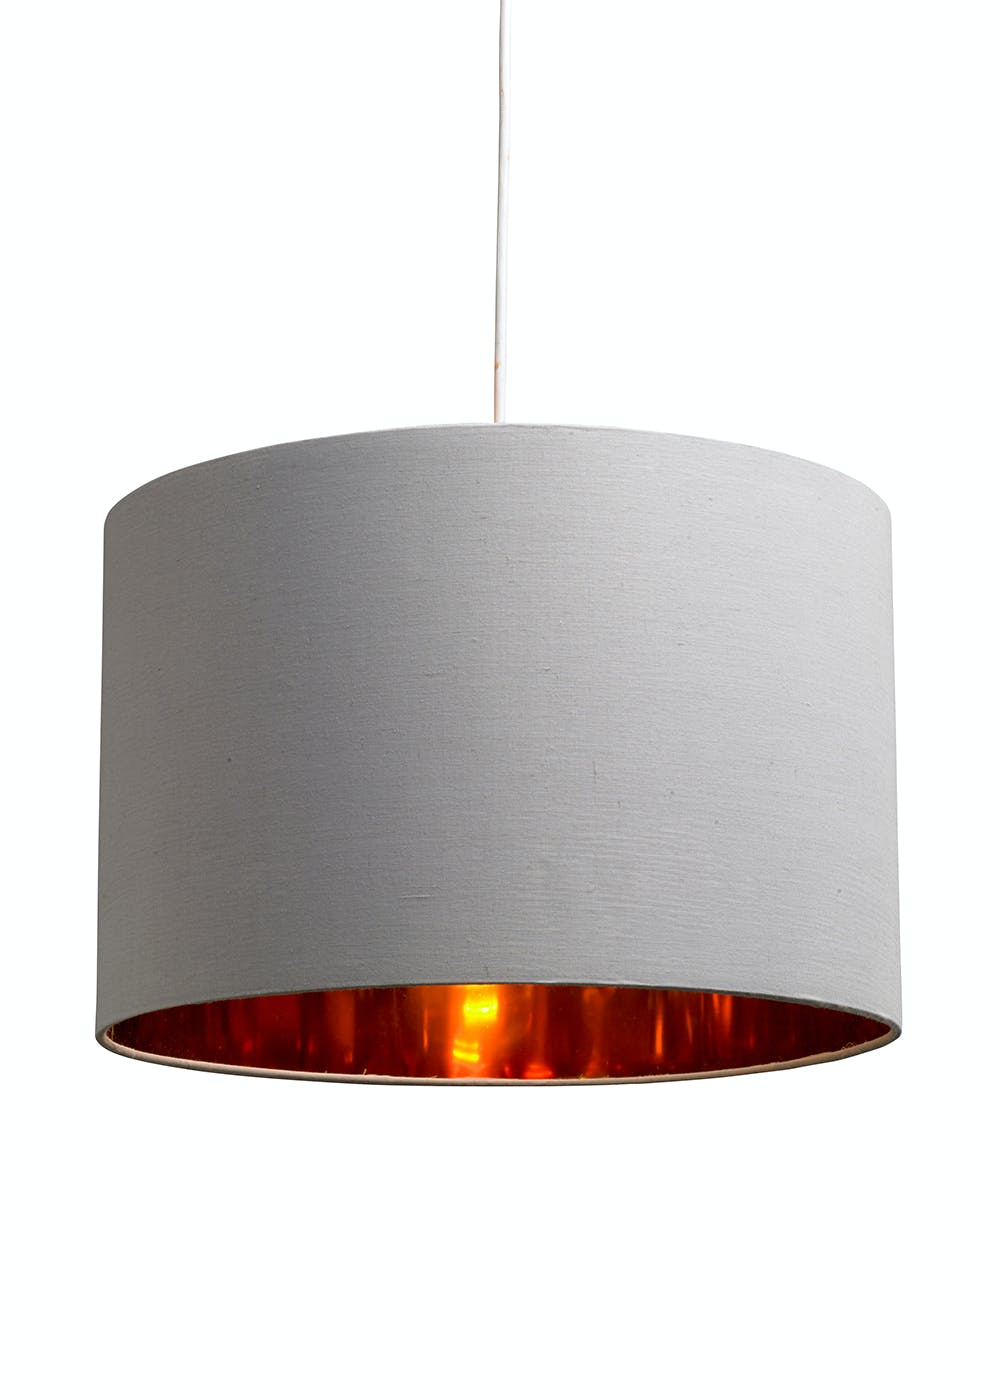 Bjorn drum easy fit lamp shade h23cm x w36cm grey matalan bjorn drum easy fit lamp shade h23cm x w36cm aloadofball Image collections